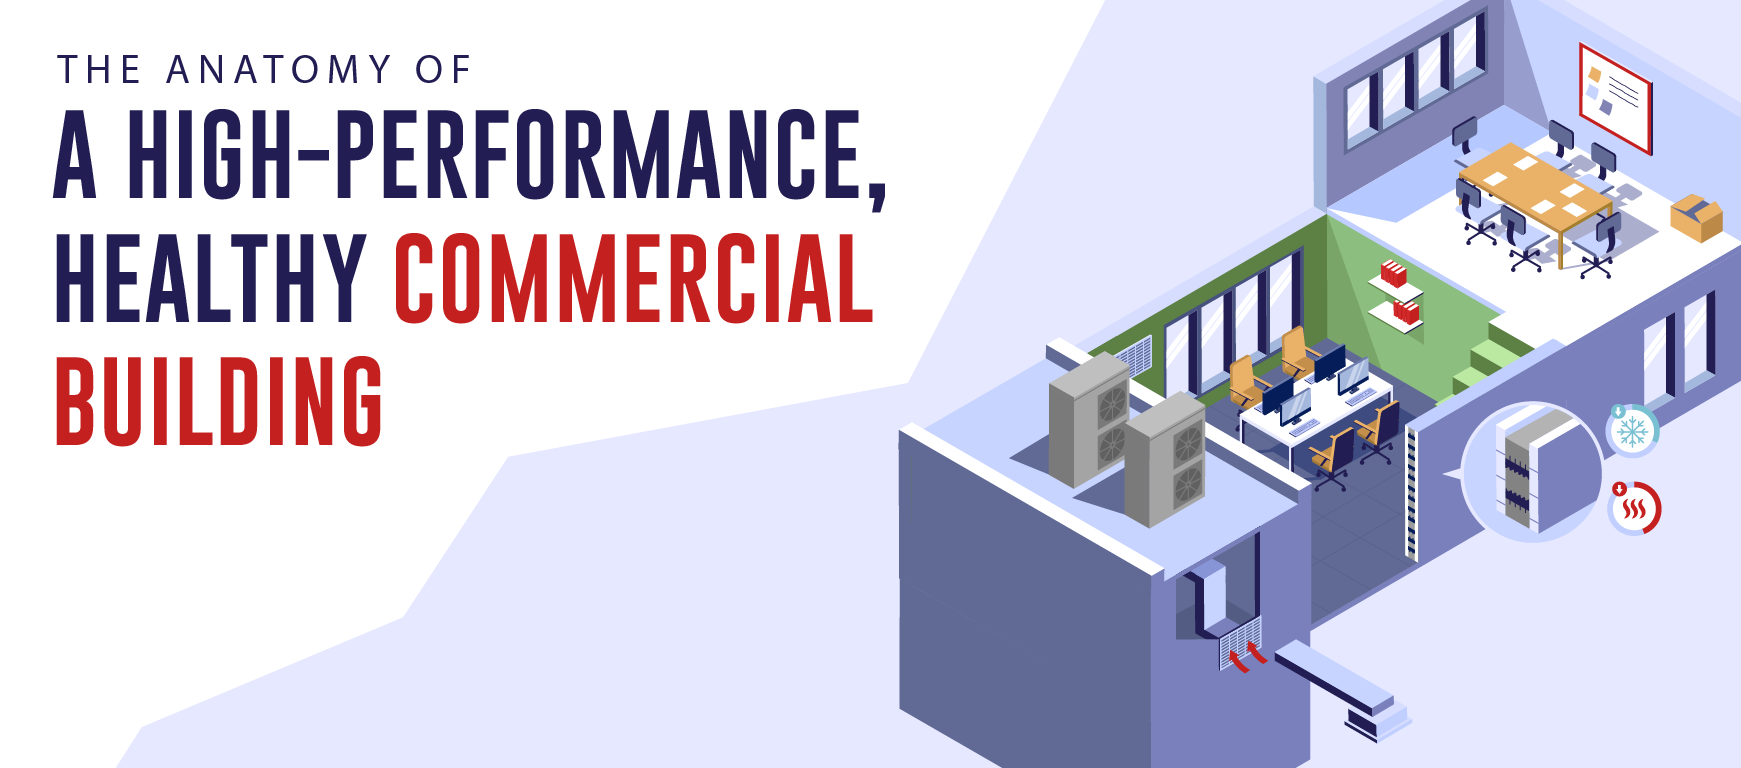 High performance healthy commercial building ig 01